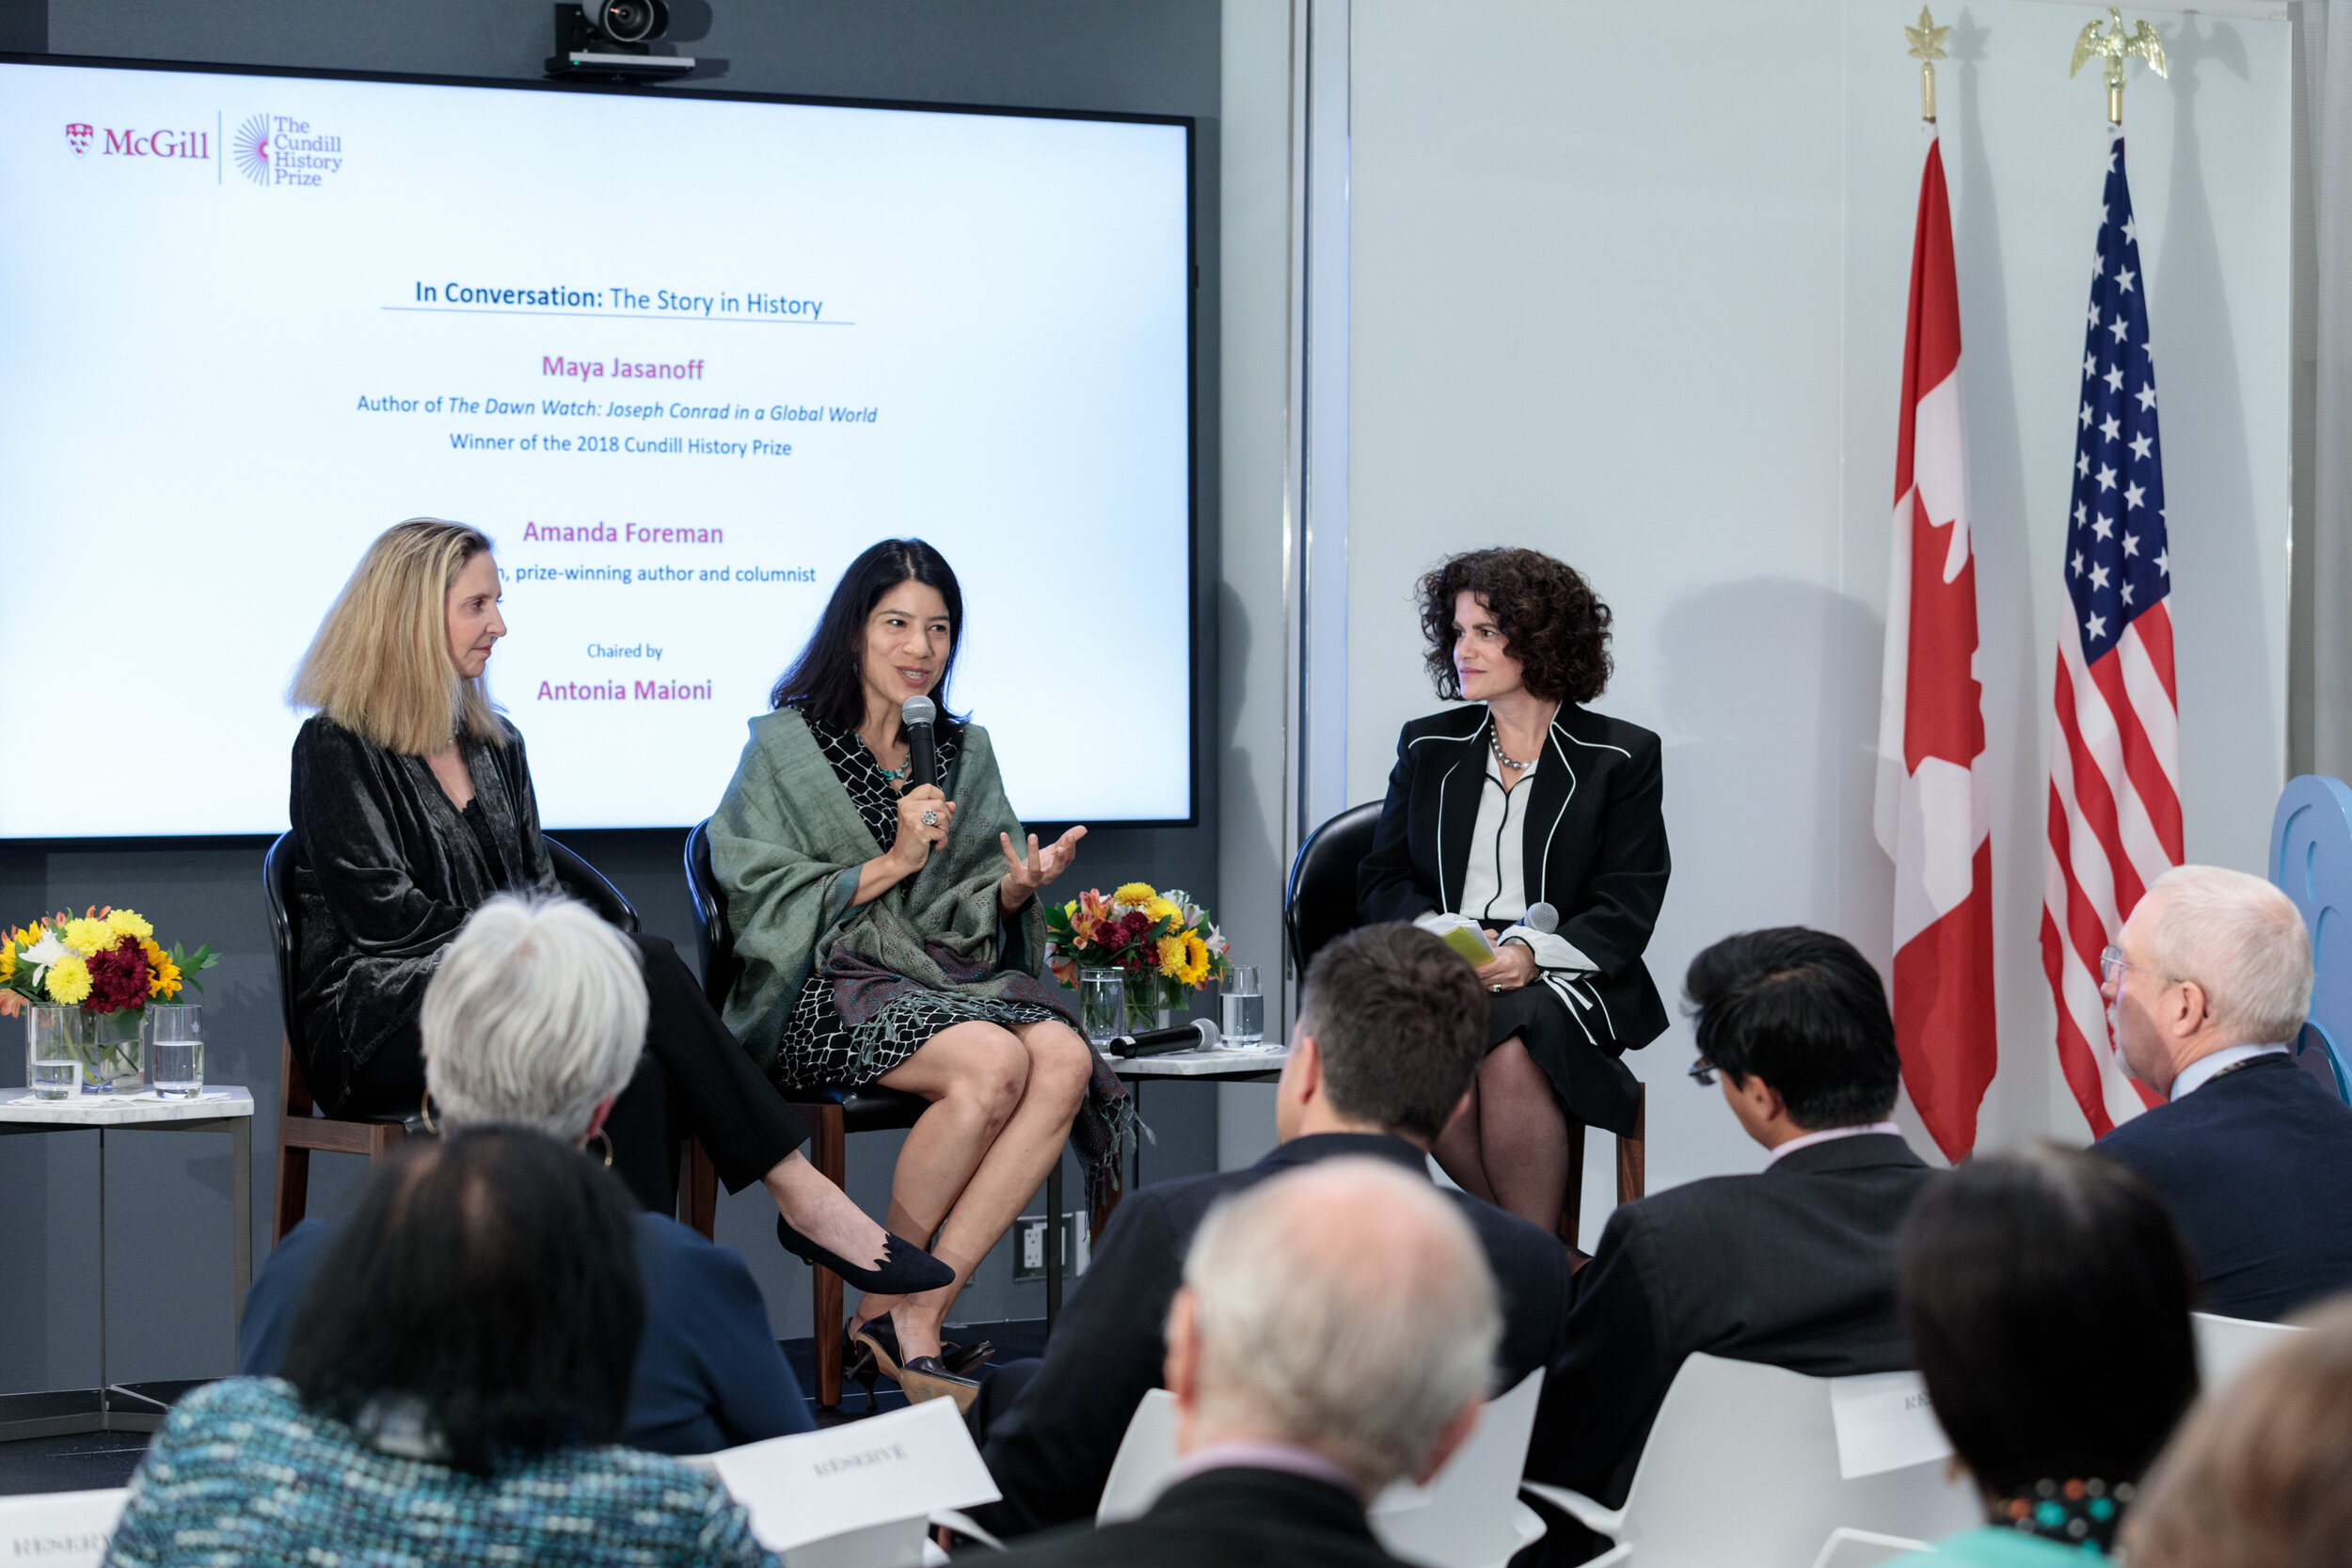 Maya Jasanoff and Amanda Foreman in conversation at the Cundill History Prize shortlist announcement in New York on Thursday.